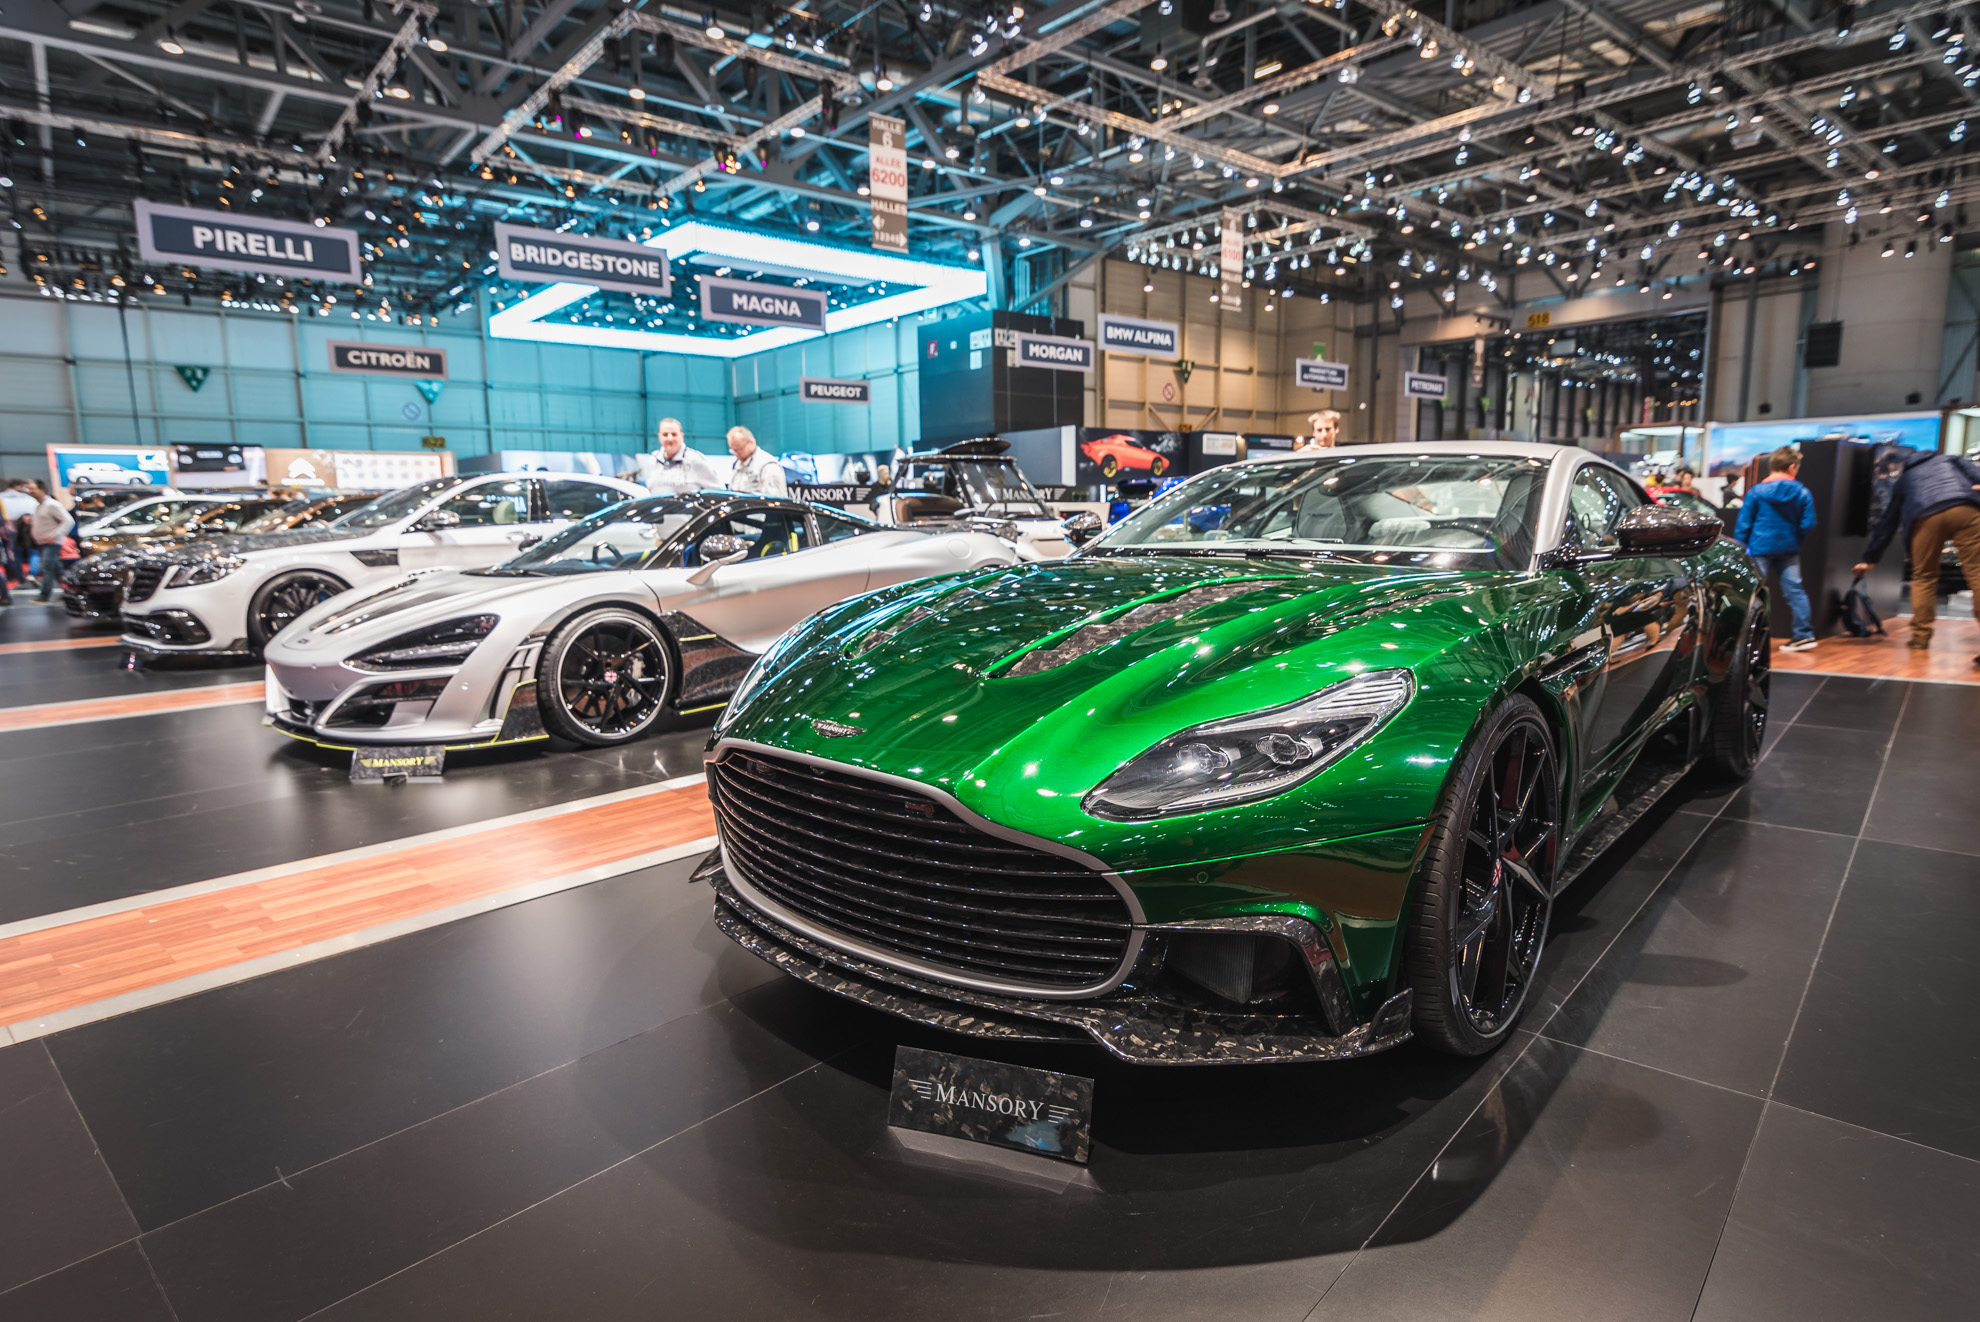 geneva-international-motor-show-igors-sinitsins-22